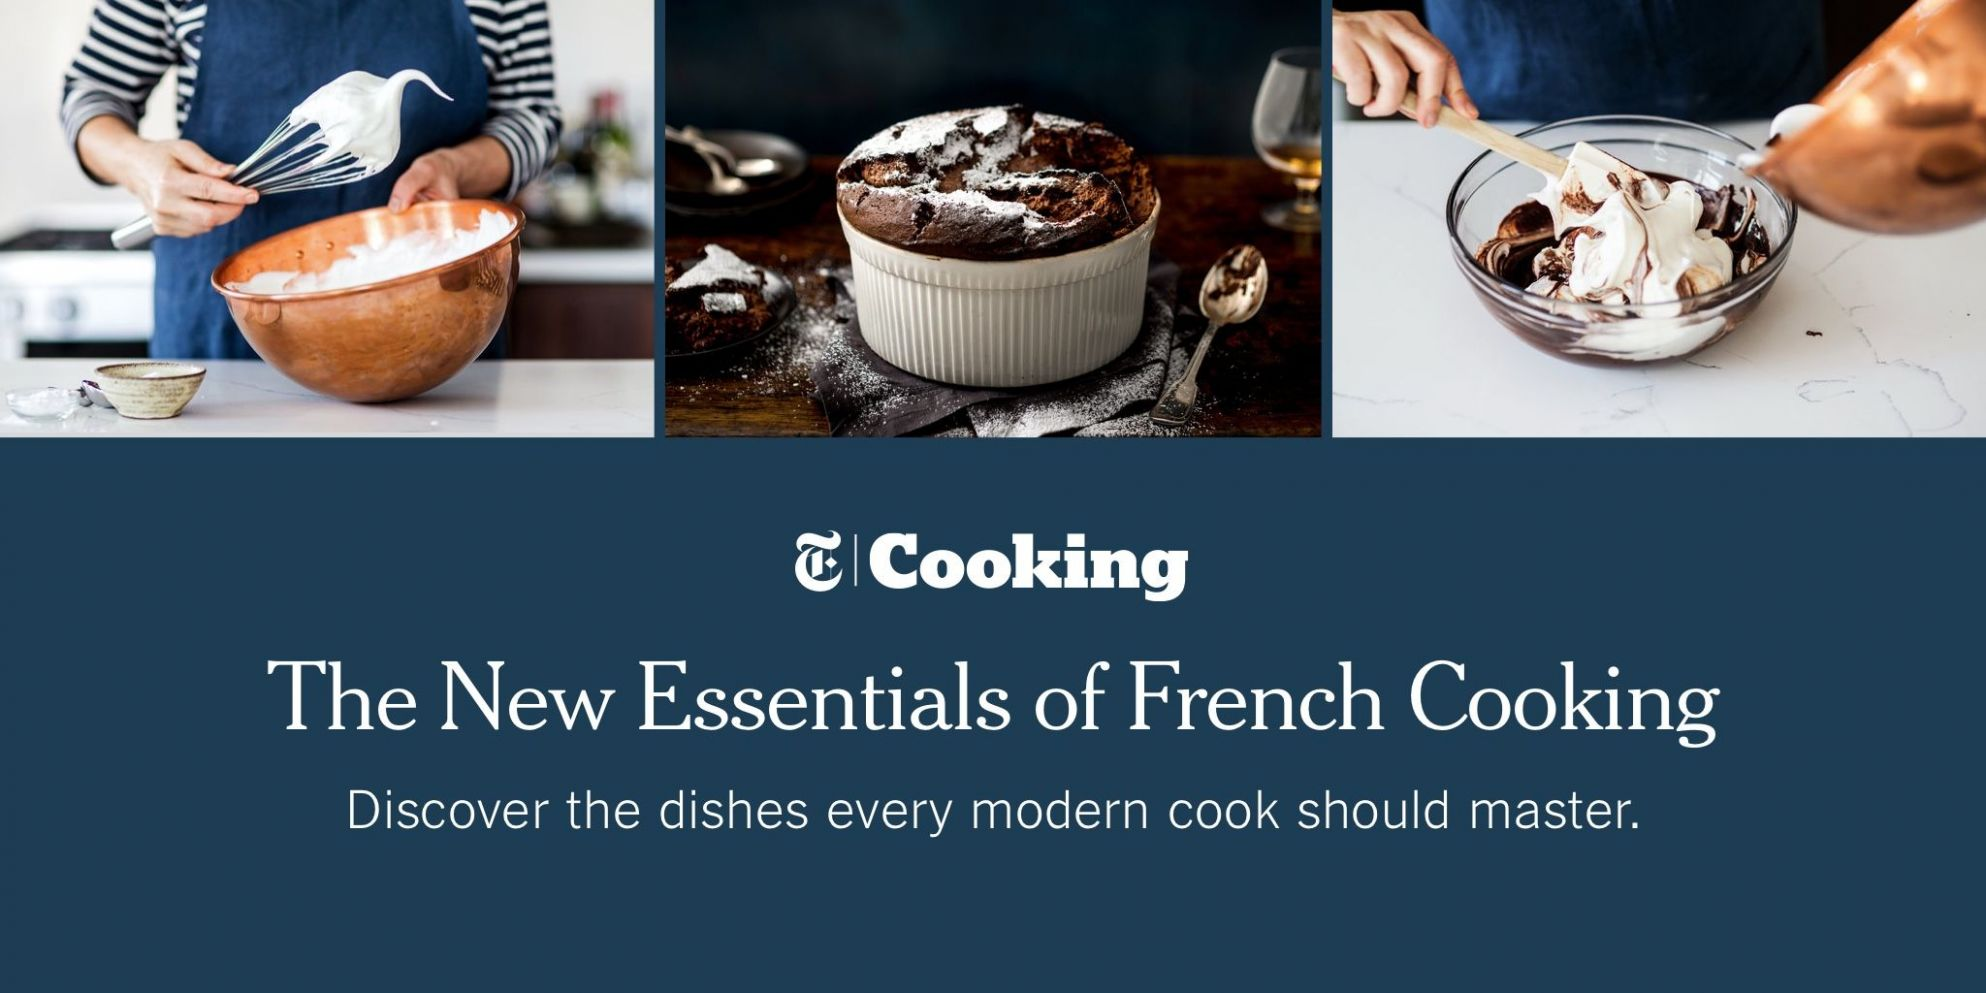 From a simple omelet to stunning soufflés, The New York Times ..